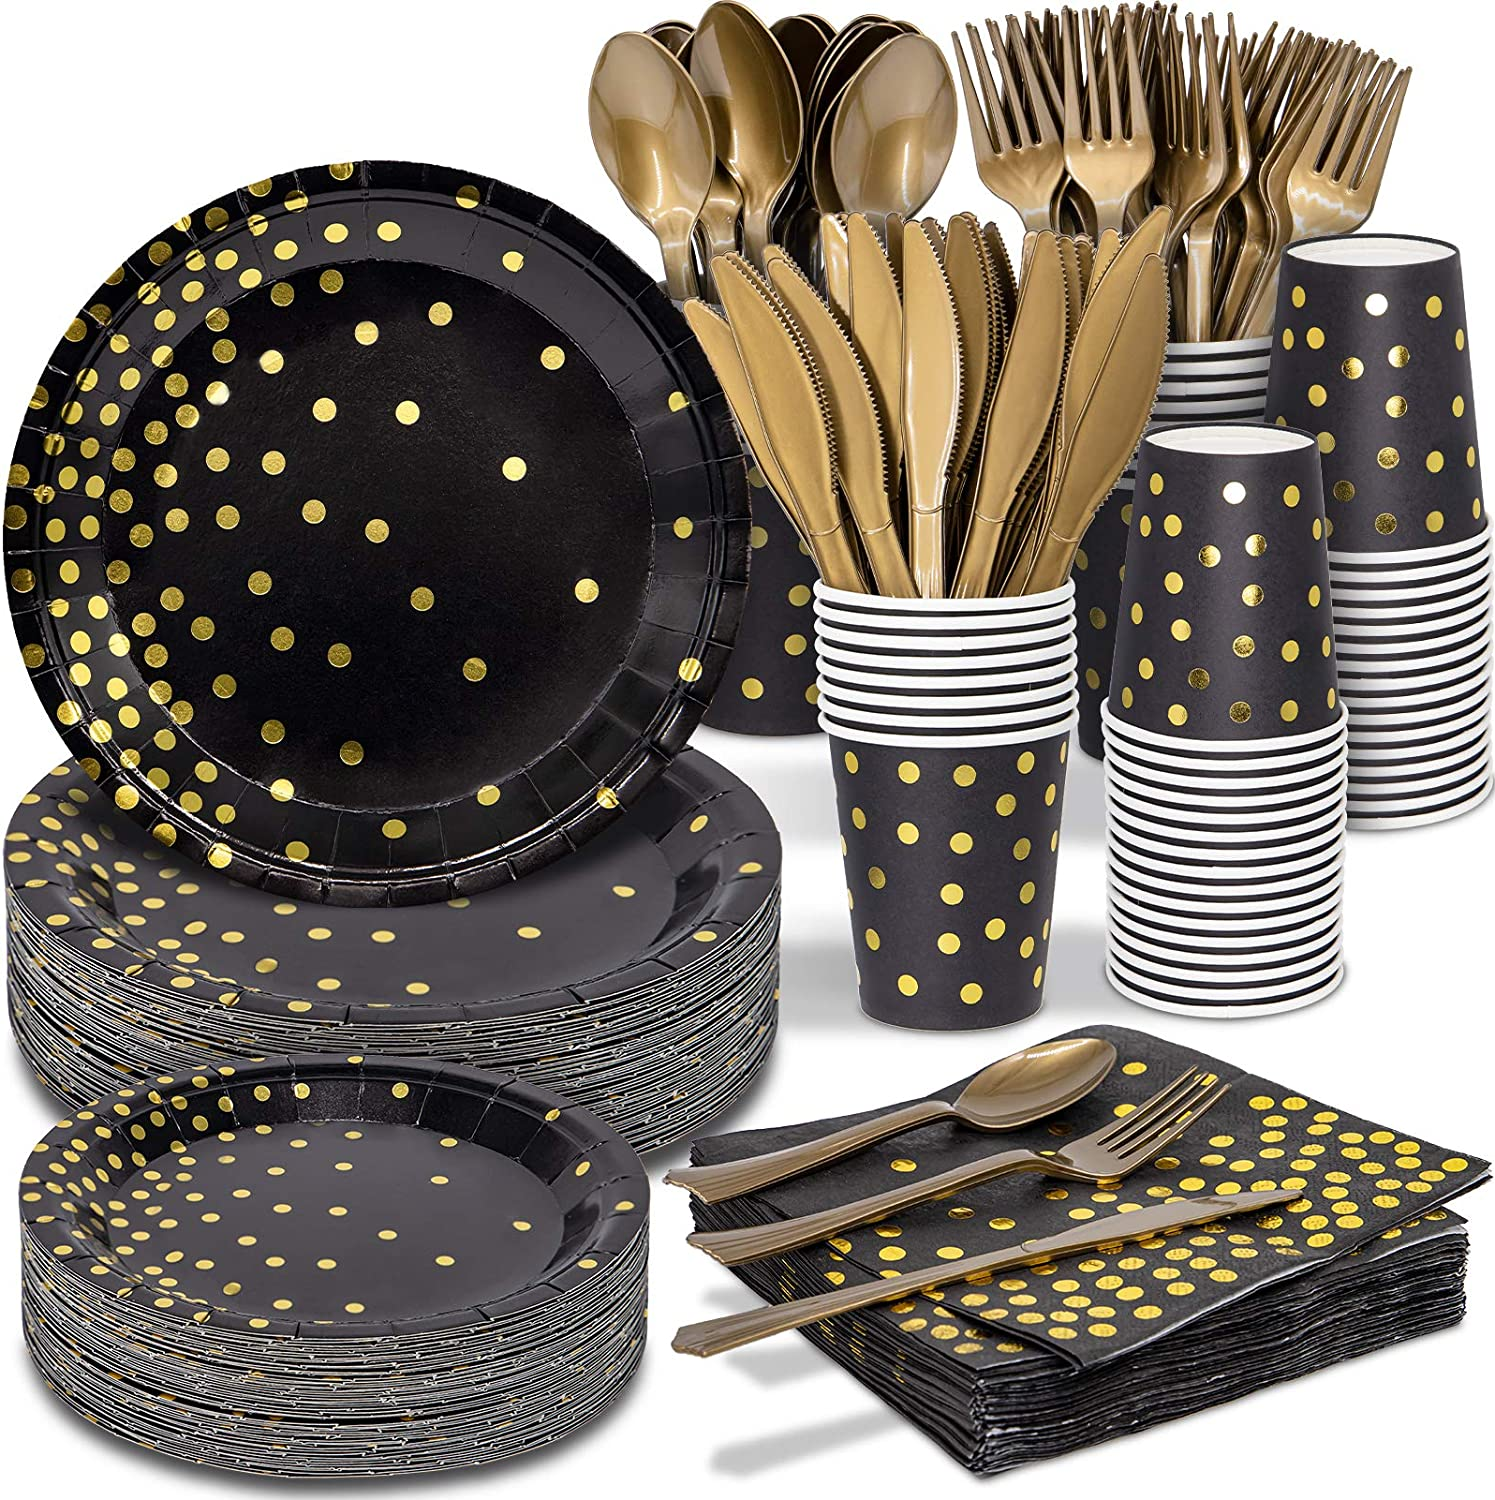 Black and Gold Party Supplies - 350 PCS Disposable Dinnerware Set - Black Paper Plates Napkins Cups, Gold Plastic Forks Knives Spoons for Birthday Christmas Halloween Thanksgiving New Years Eve Party